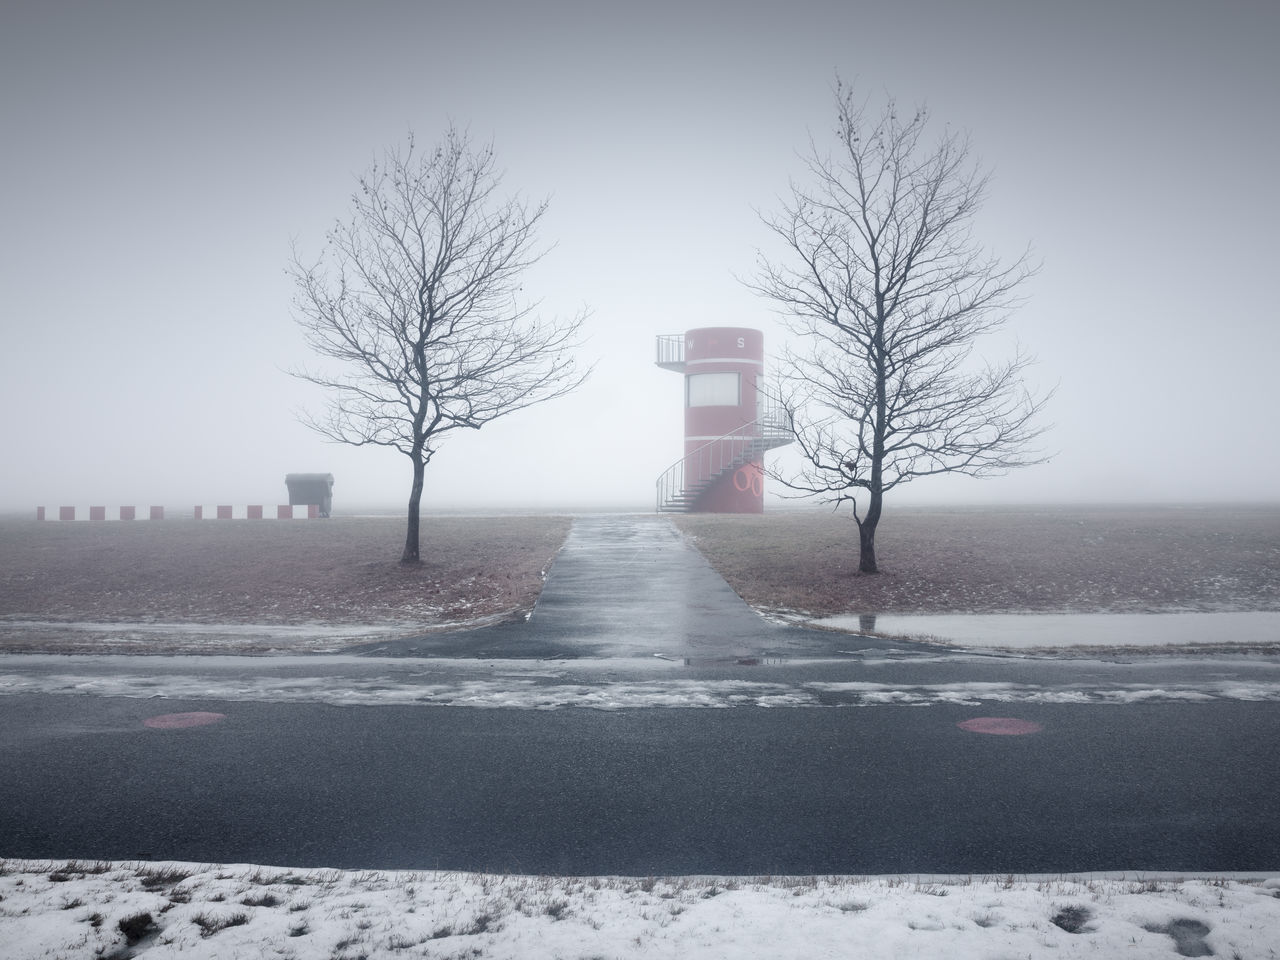 winter scene at tempelhofer field berlin Bare Tree Beauty In Nature Berlin Clear Sky Cold Temperature Day Fine Art Long Exposure Muted Colors Nature No People Outdoors Philipp Dase Road Sky Snow Tempelhofer Feld Tree Weather Winter